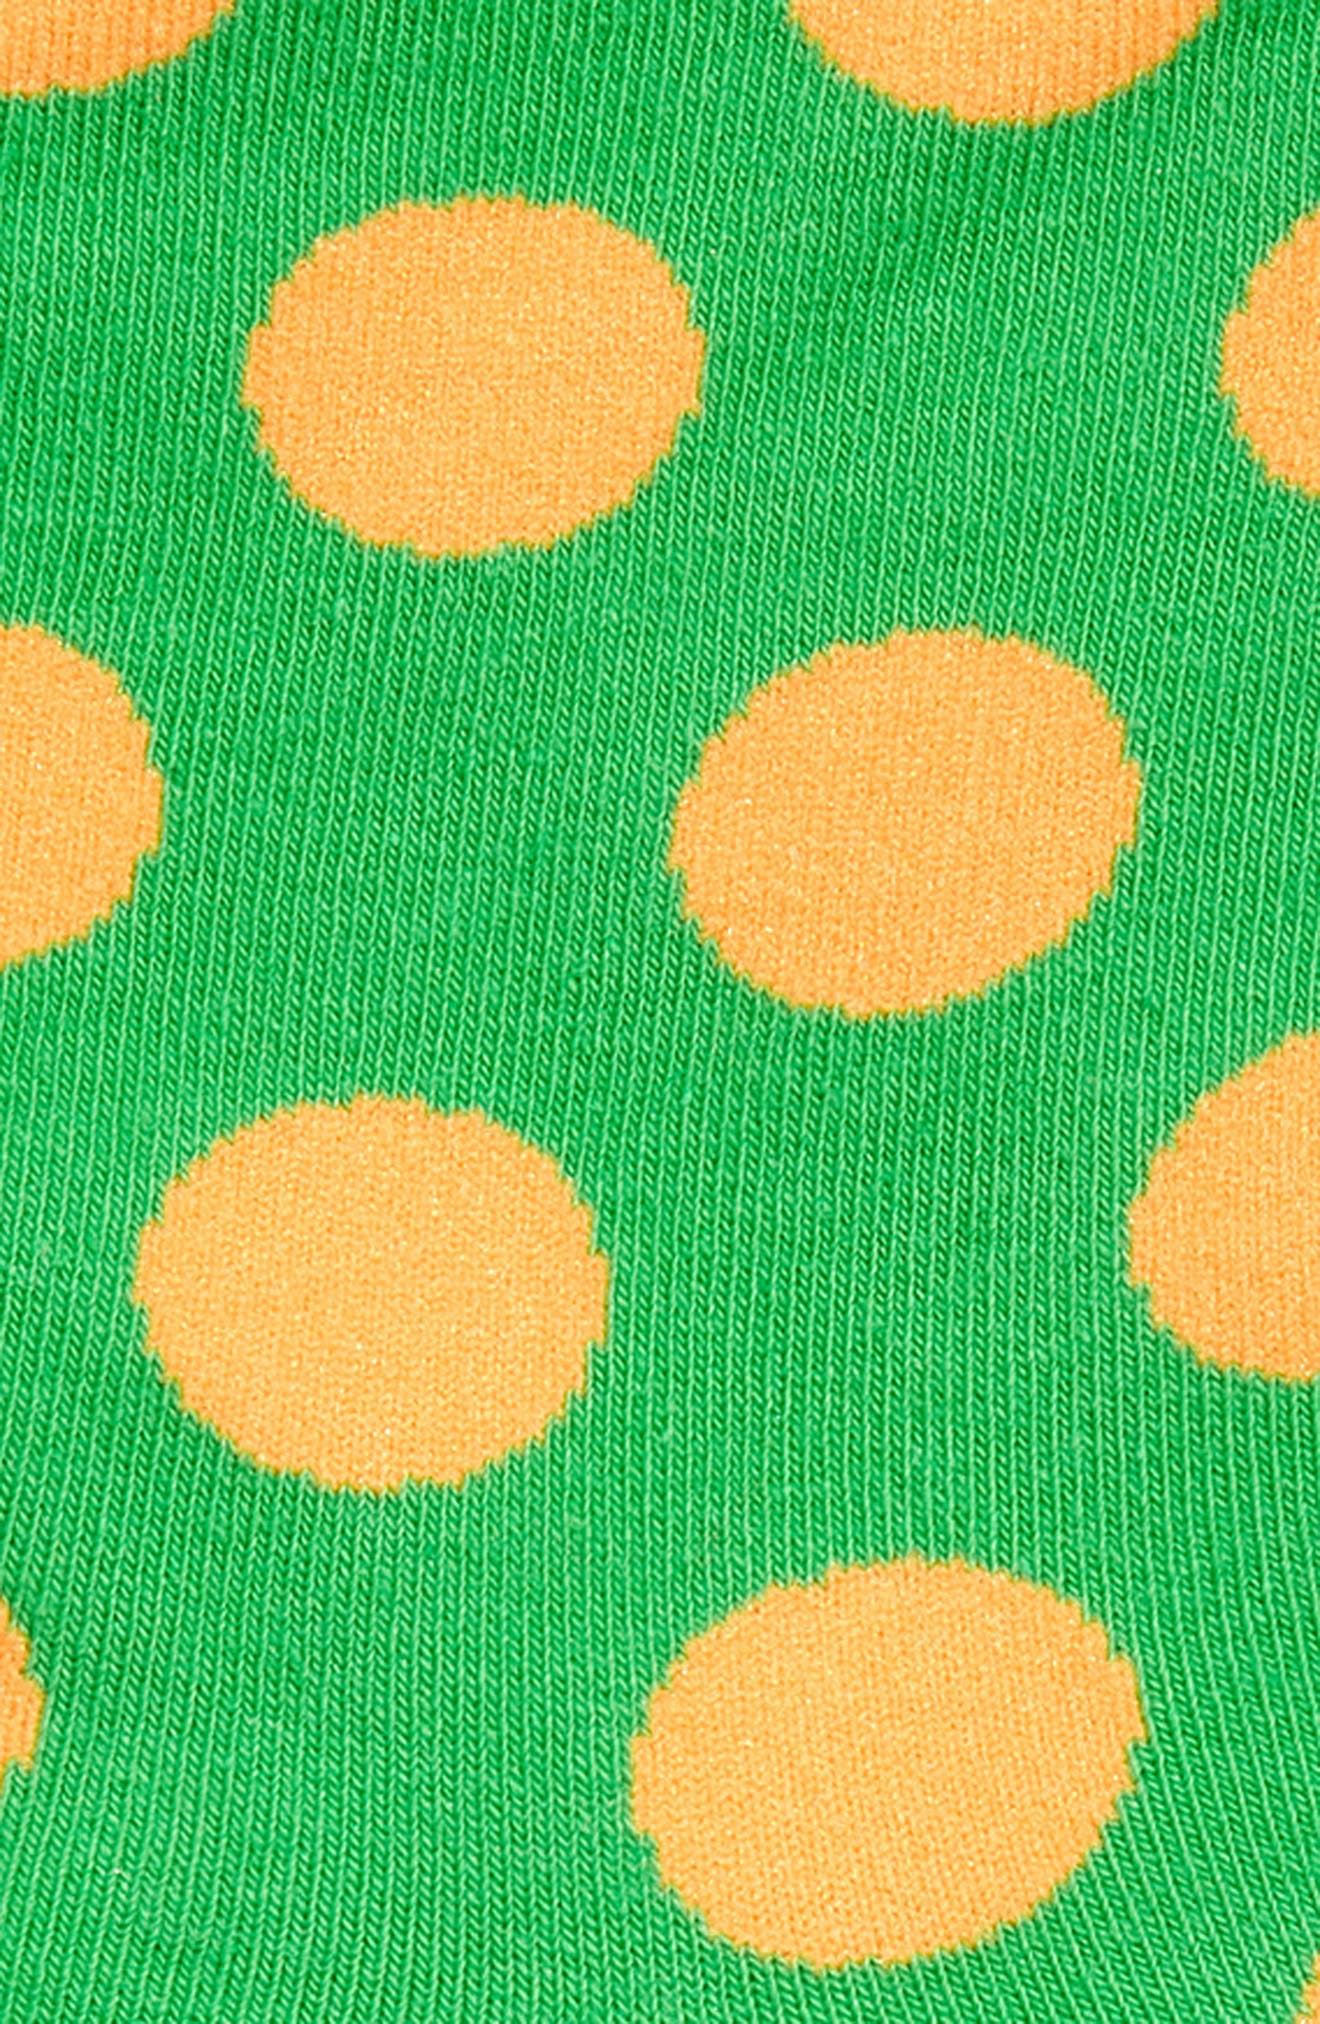 Dot Crew Socks,                             Alternate thumbnail 2, color,                             GREEN/ ORANGE